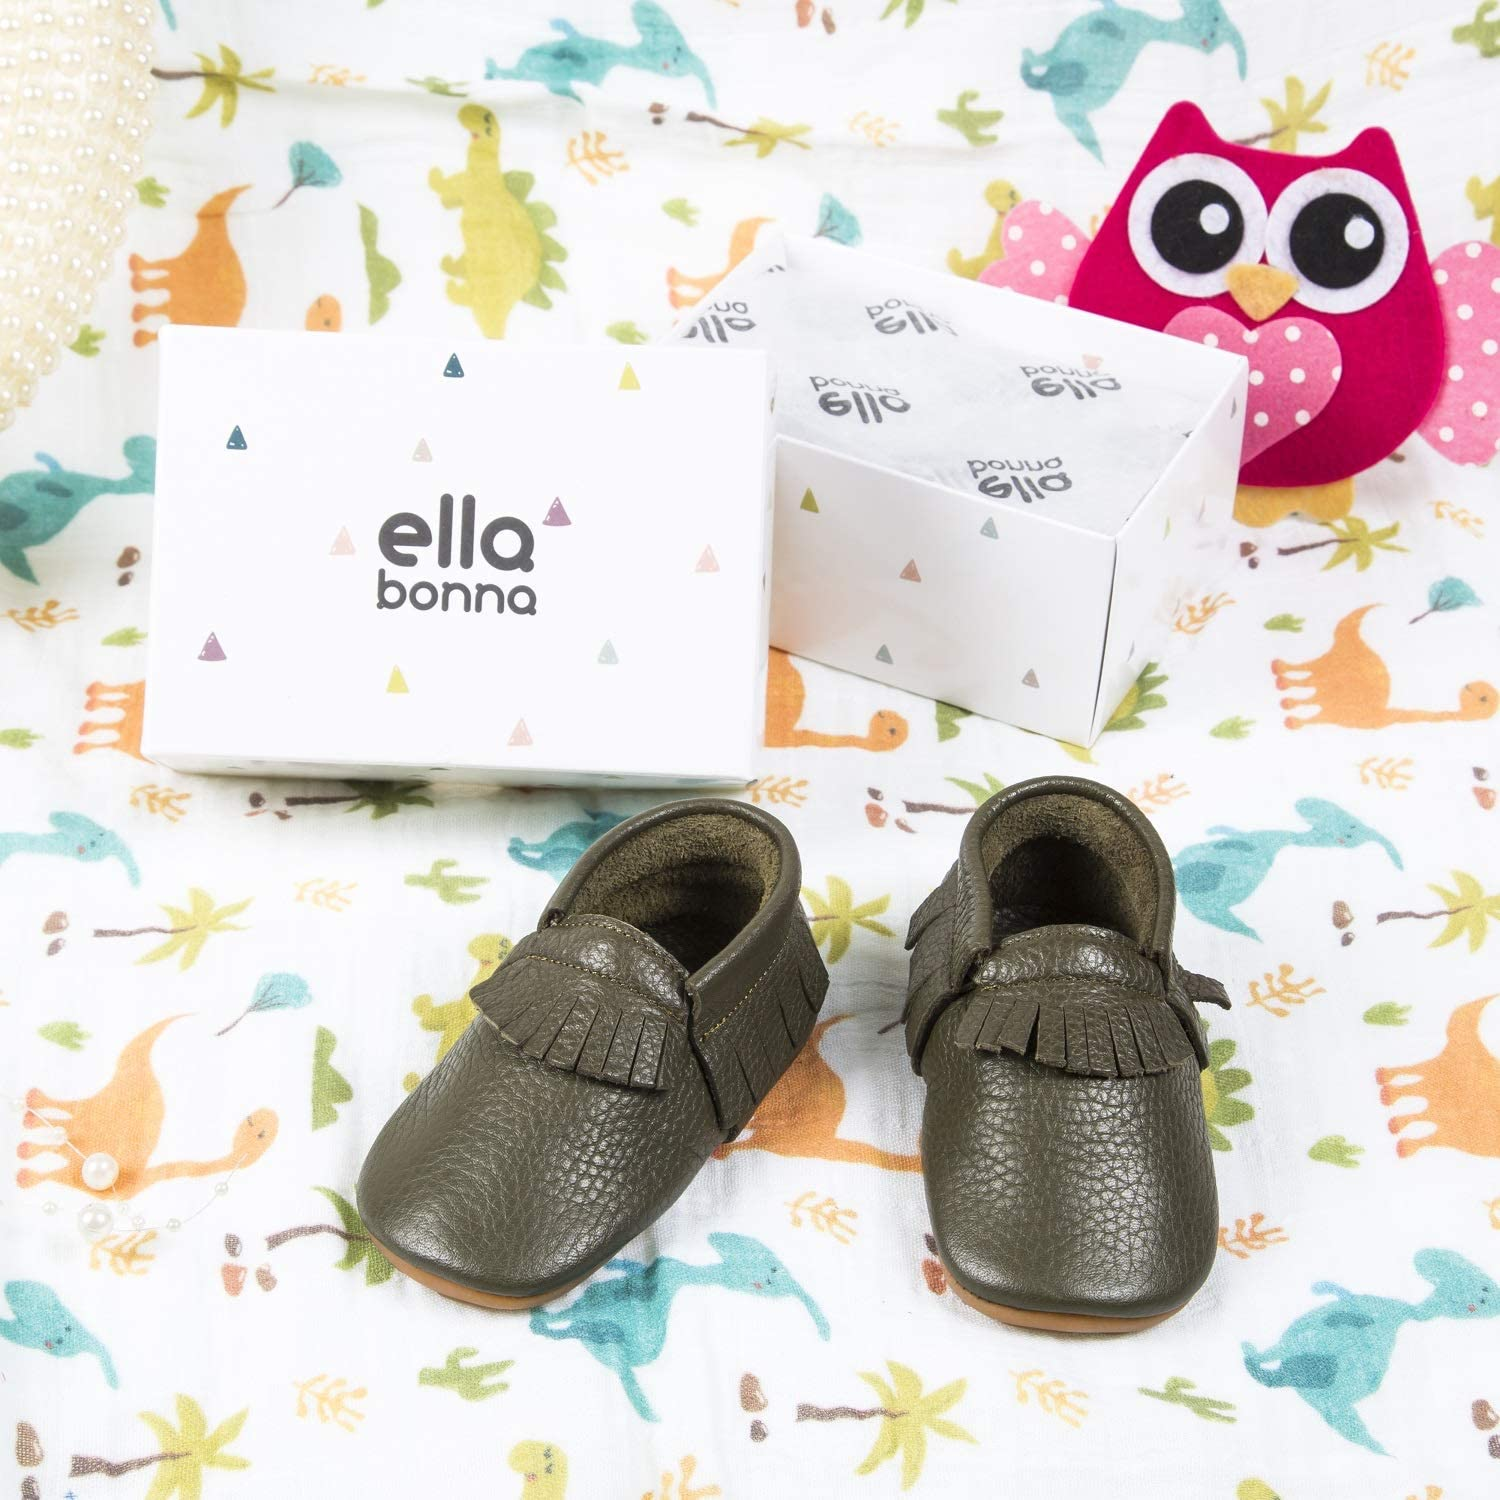 Infants Boys Girls Unisex Ella Bonna Leather Baby Moccasins with Soft and Rubber Sole Mini Shoes for Newborns